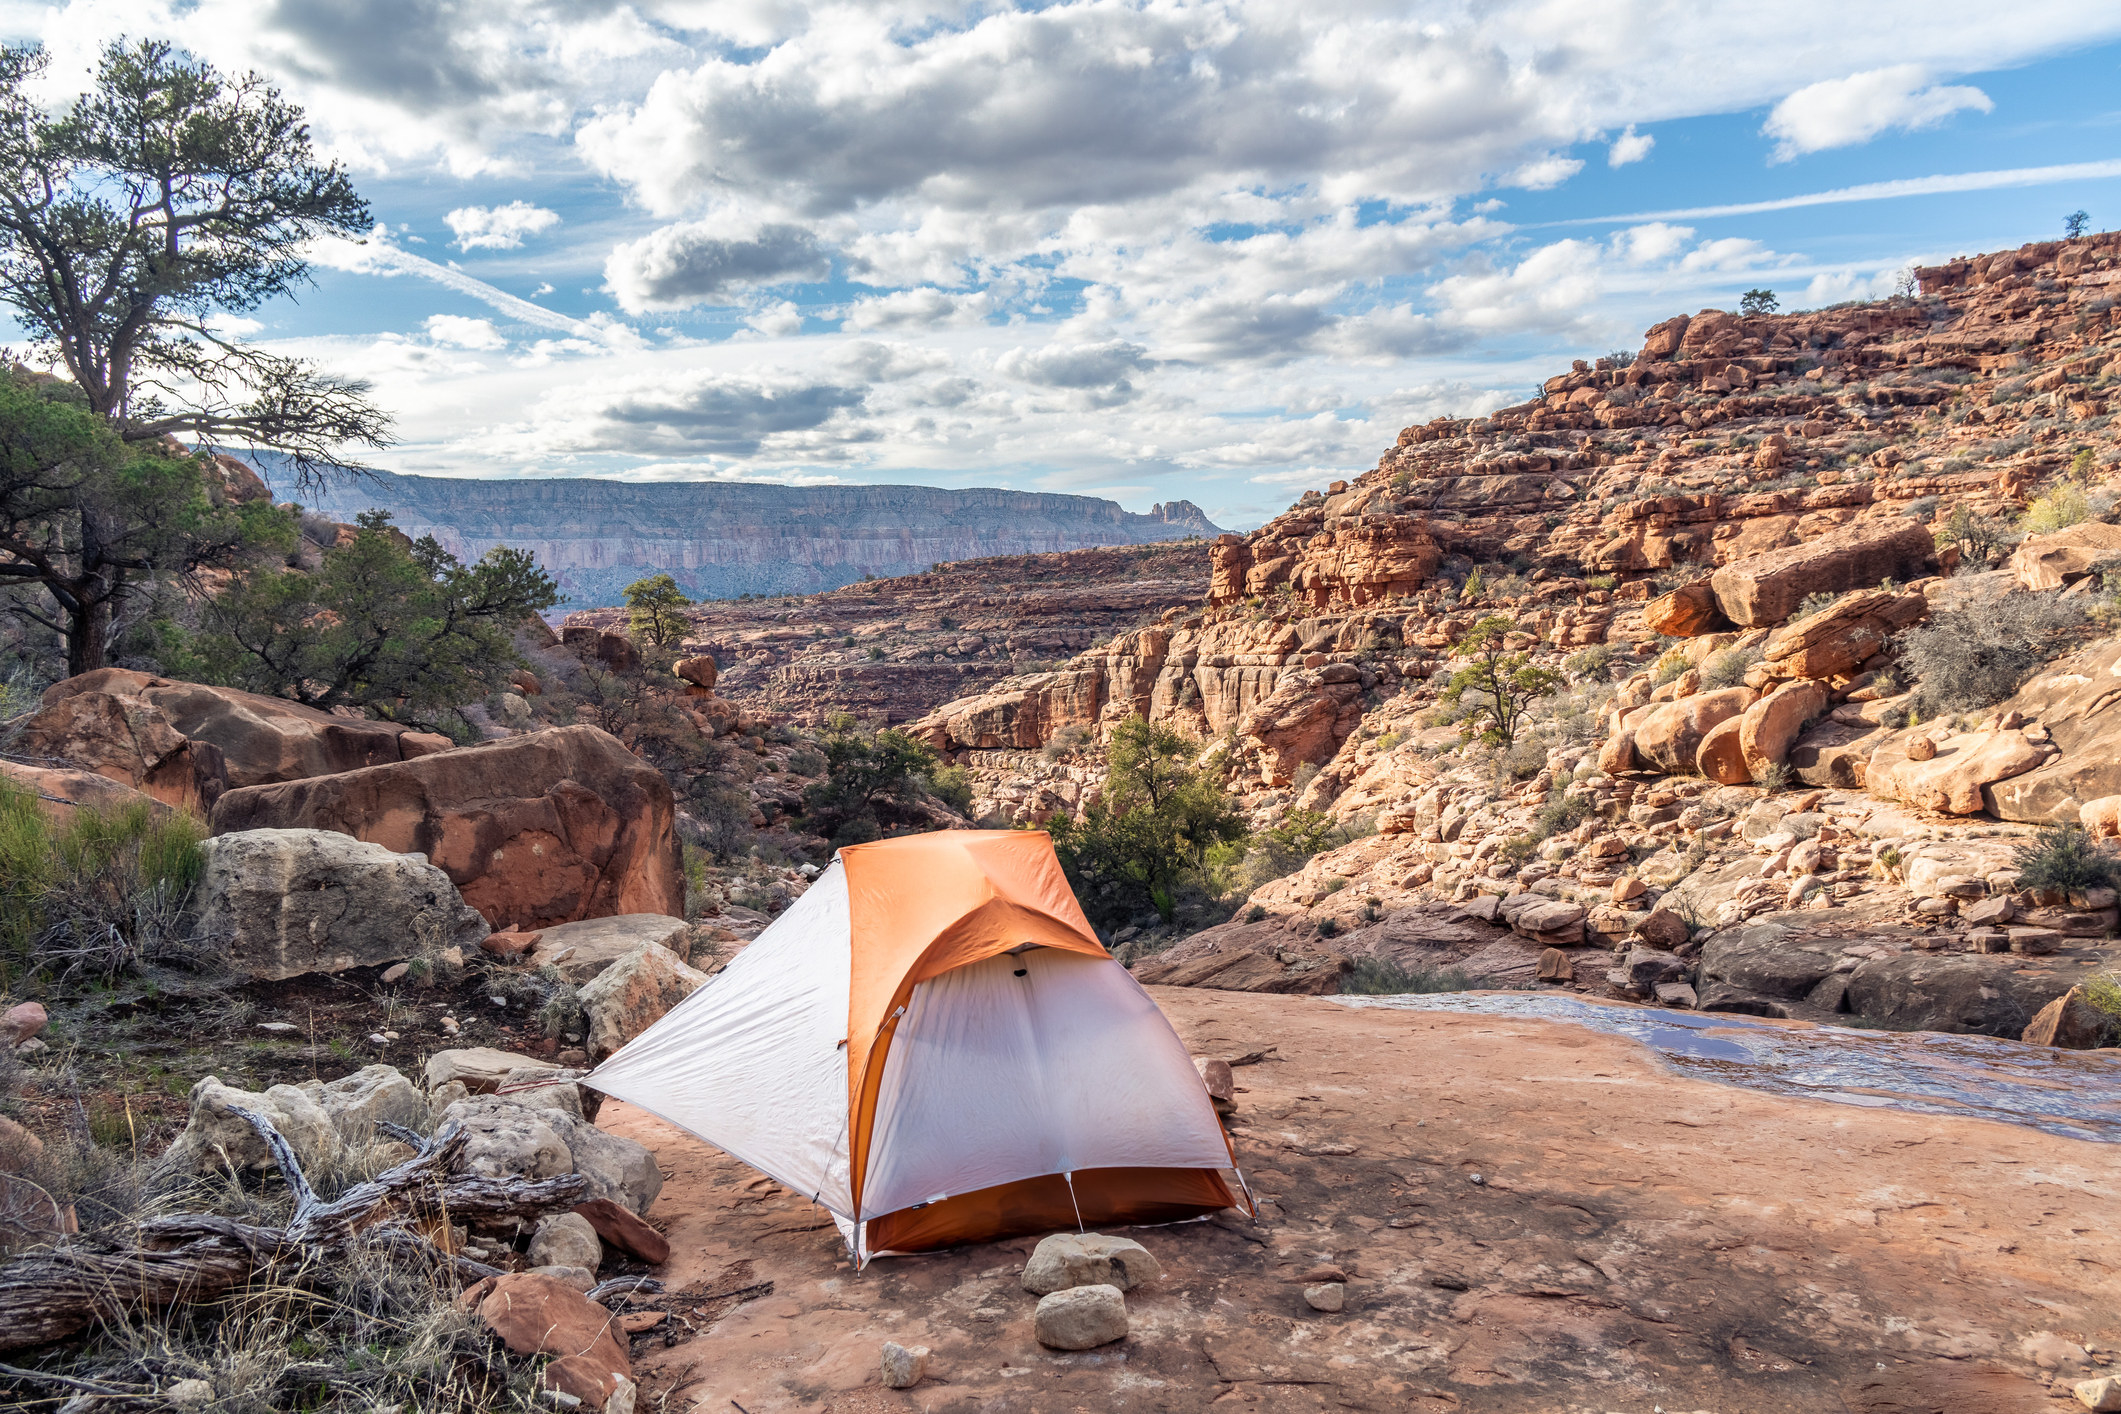 Camping on a platform of rock in the Royal Arch Drainage with running water nearby — Grand Canyon National Park, Arizona